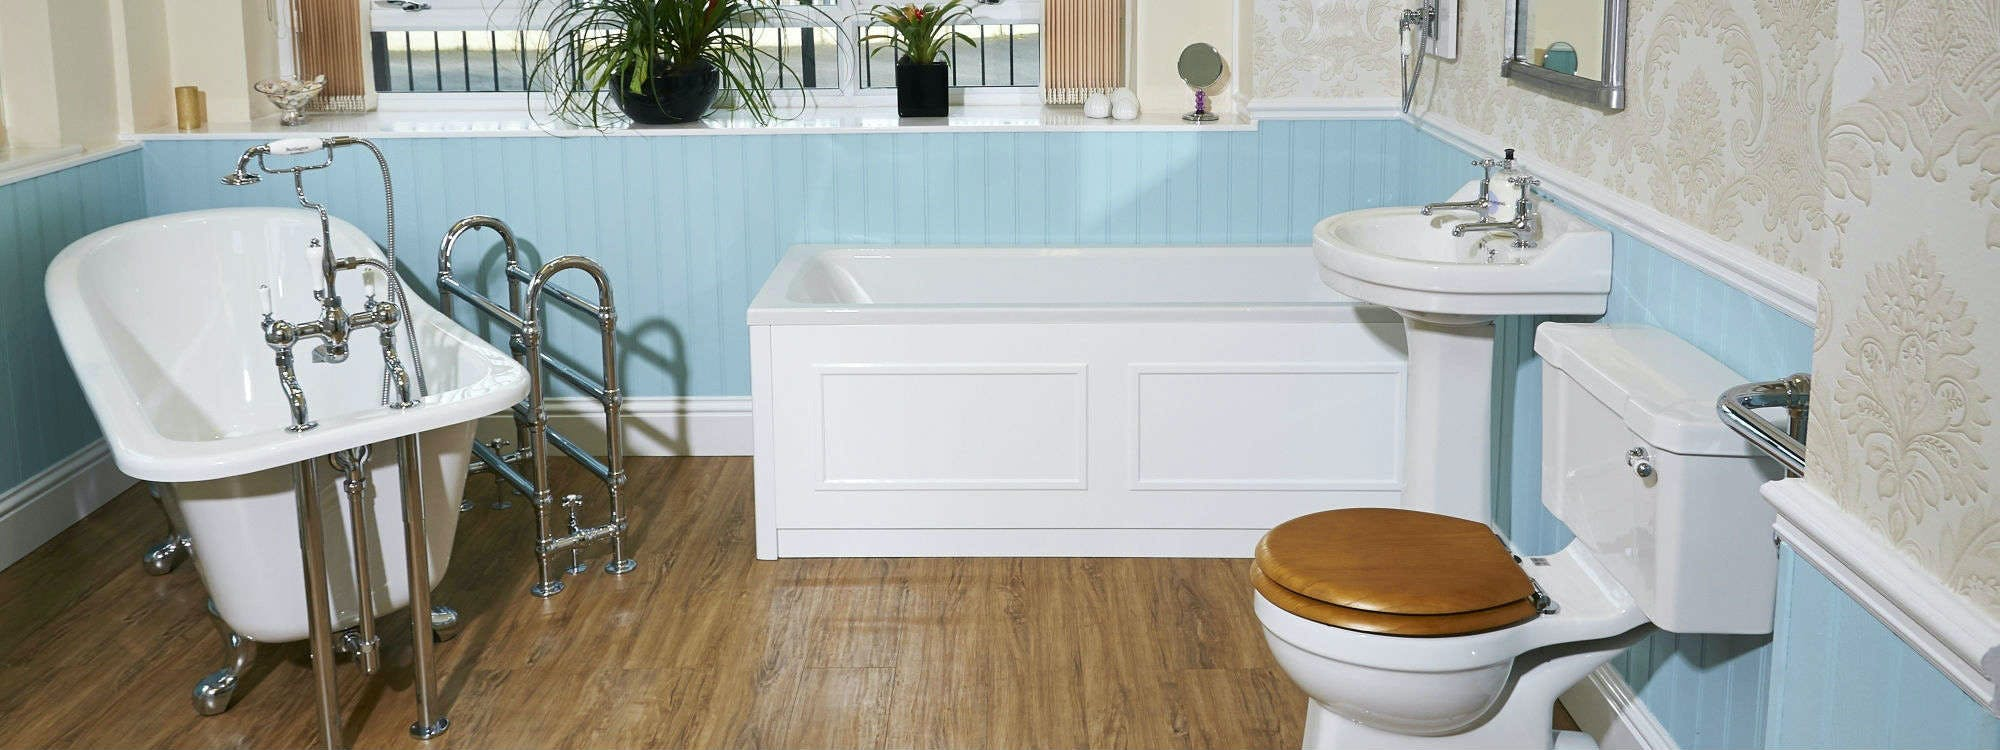 At out Leeds Bathroom Showroom we have a dedicated traditional bathroom area which features a variety of traditionally styled showers, baths, basins & WC's.